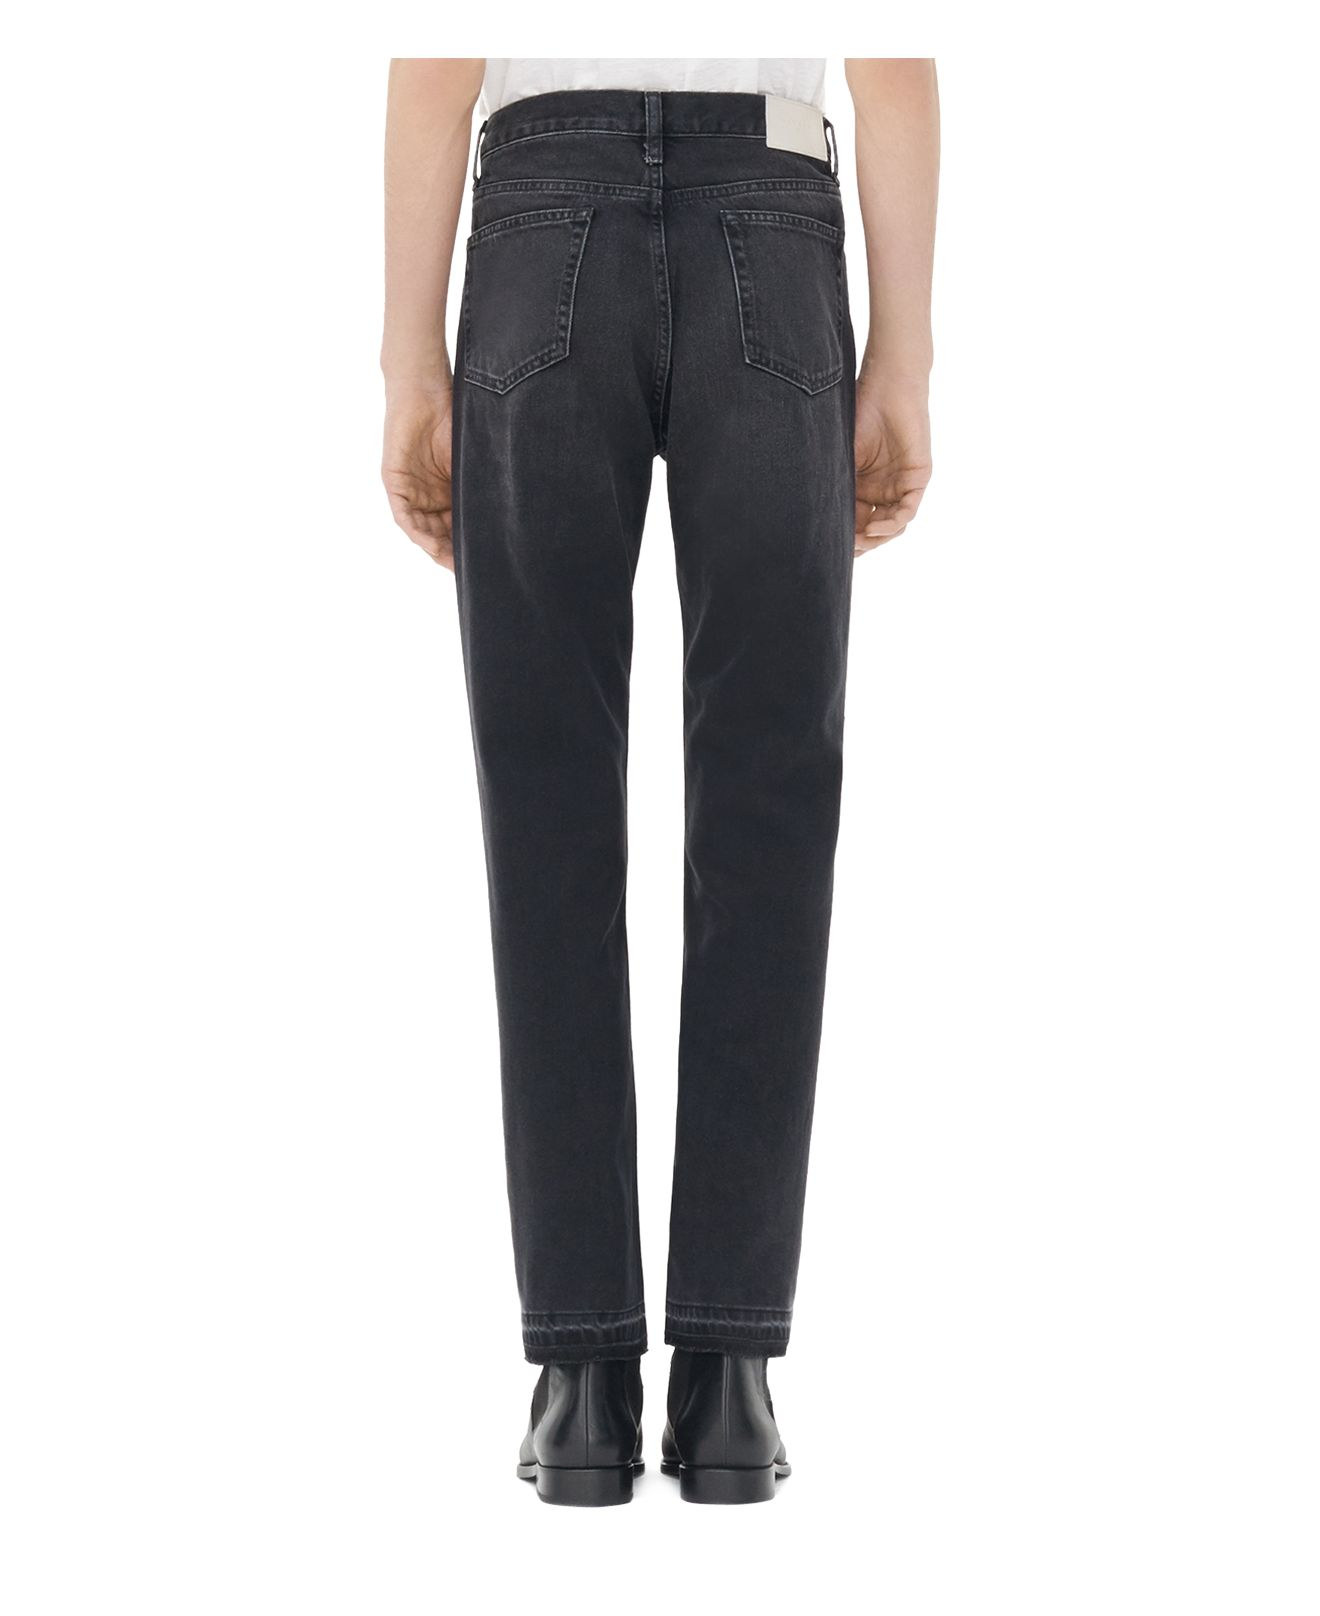 Sandro Denim Paint Curtis Straight Jeans In Noir in Black for Men